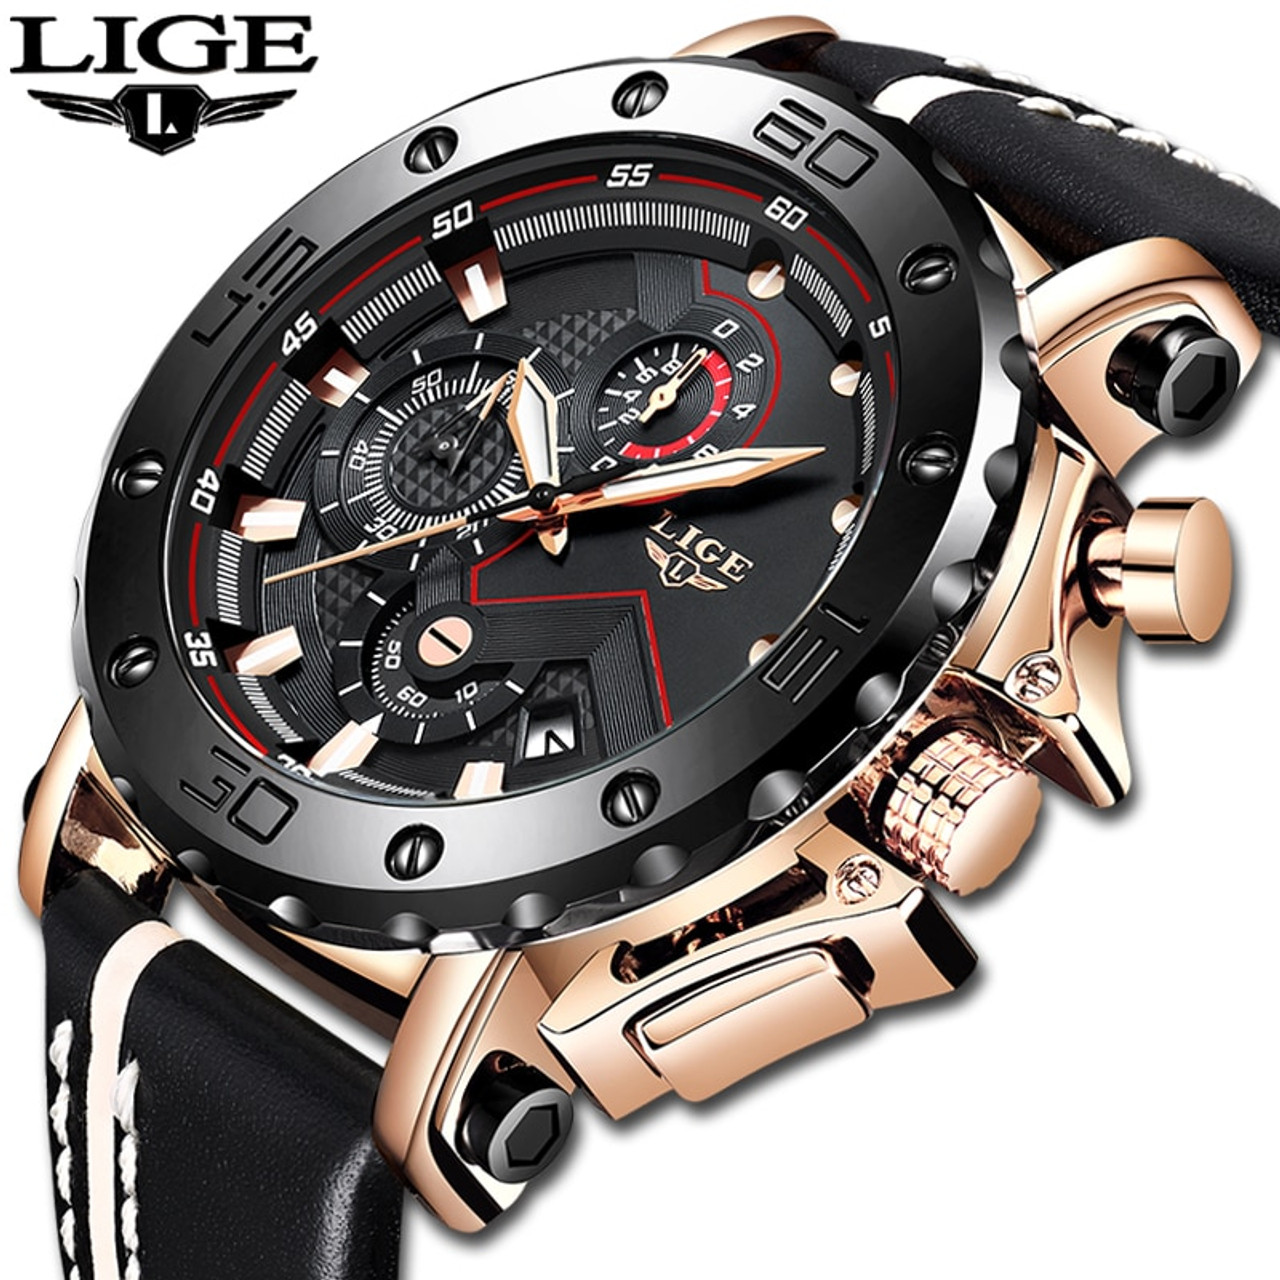 833ee28900f 2019LIGE New Fashion Mens Watches Top Brand Luxury Big Dial Military Quartz  Watch Leather Waterproof Sport ...